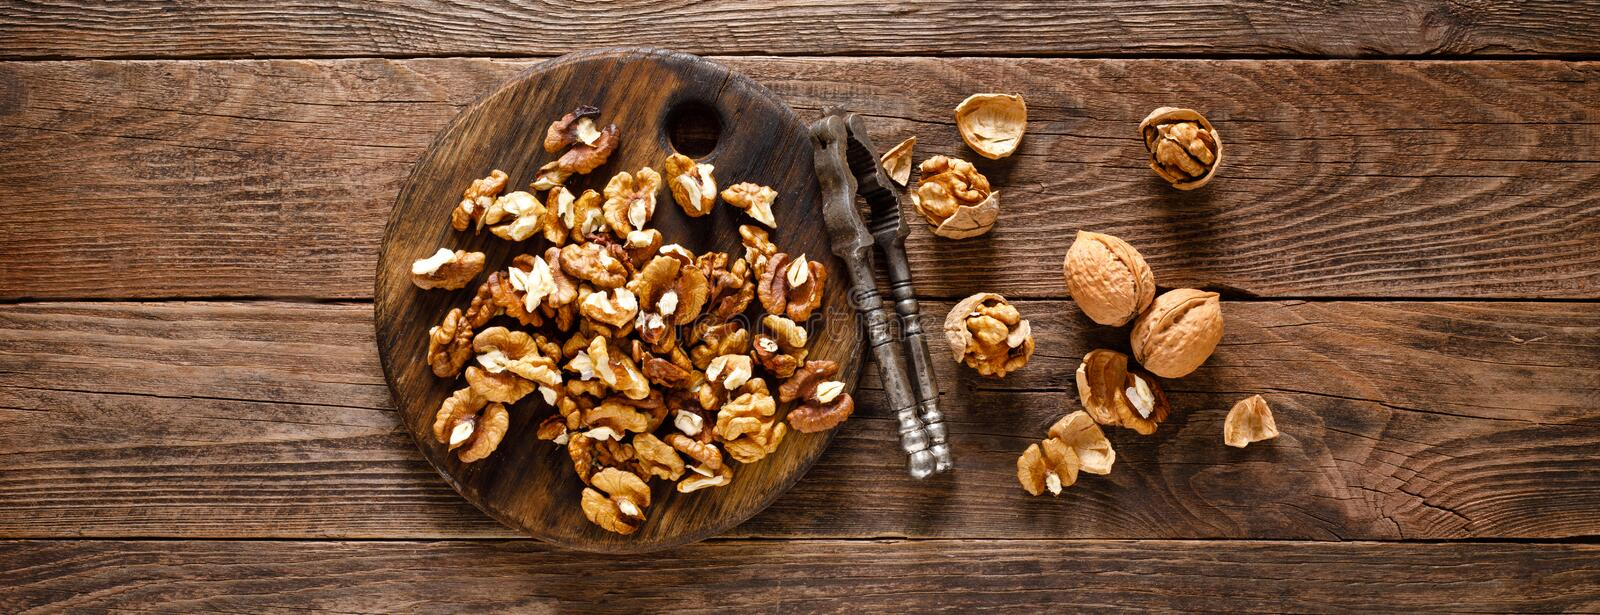 Walnuts. Kernels and whole nuts on wooden rustic table, banner closeup, top view. Walnuts. Kernels and whole nuts on wooden rustic table, banner, top view stock images